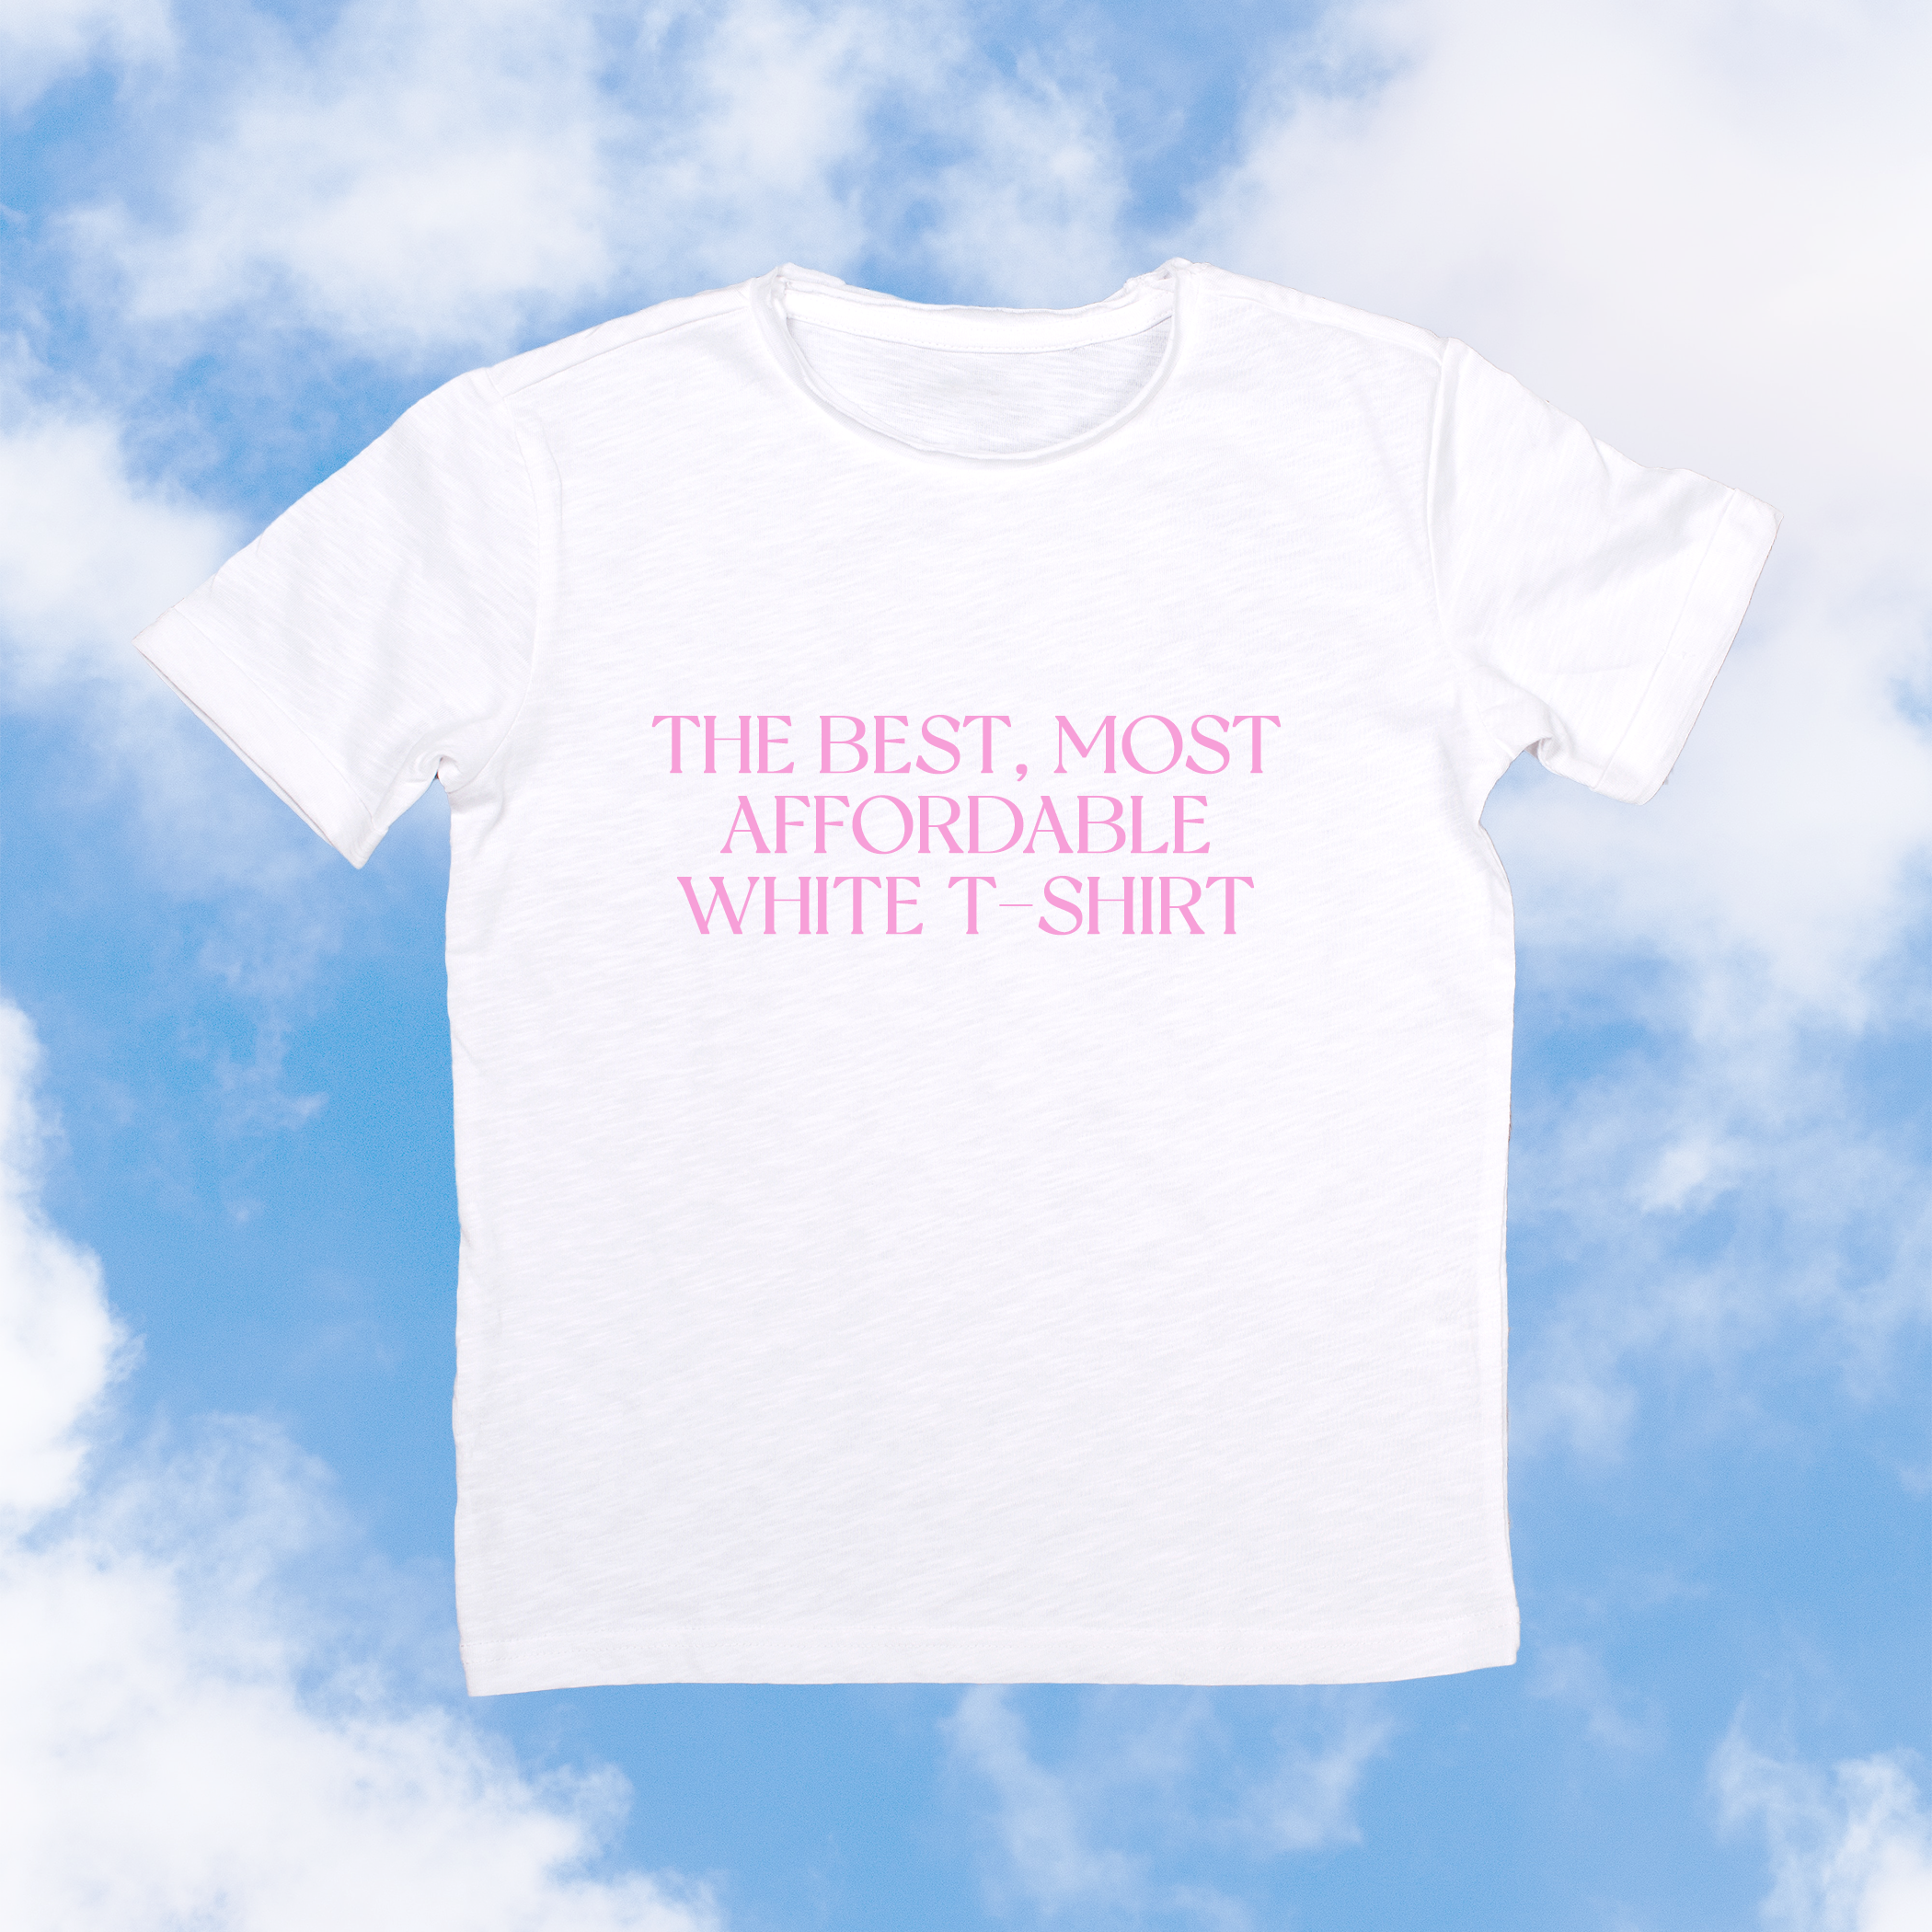 The Best, Most Affordable White T-Shirt